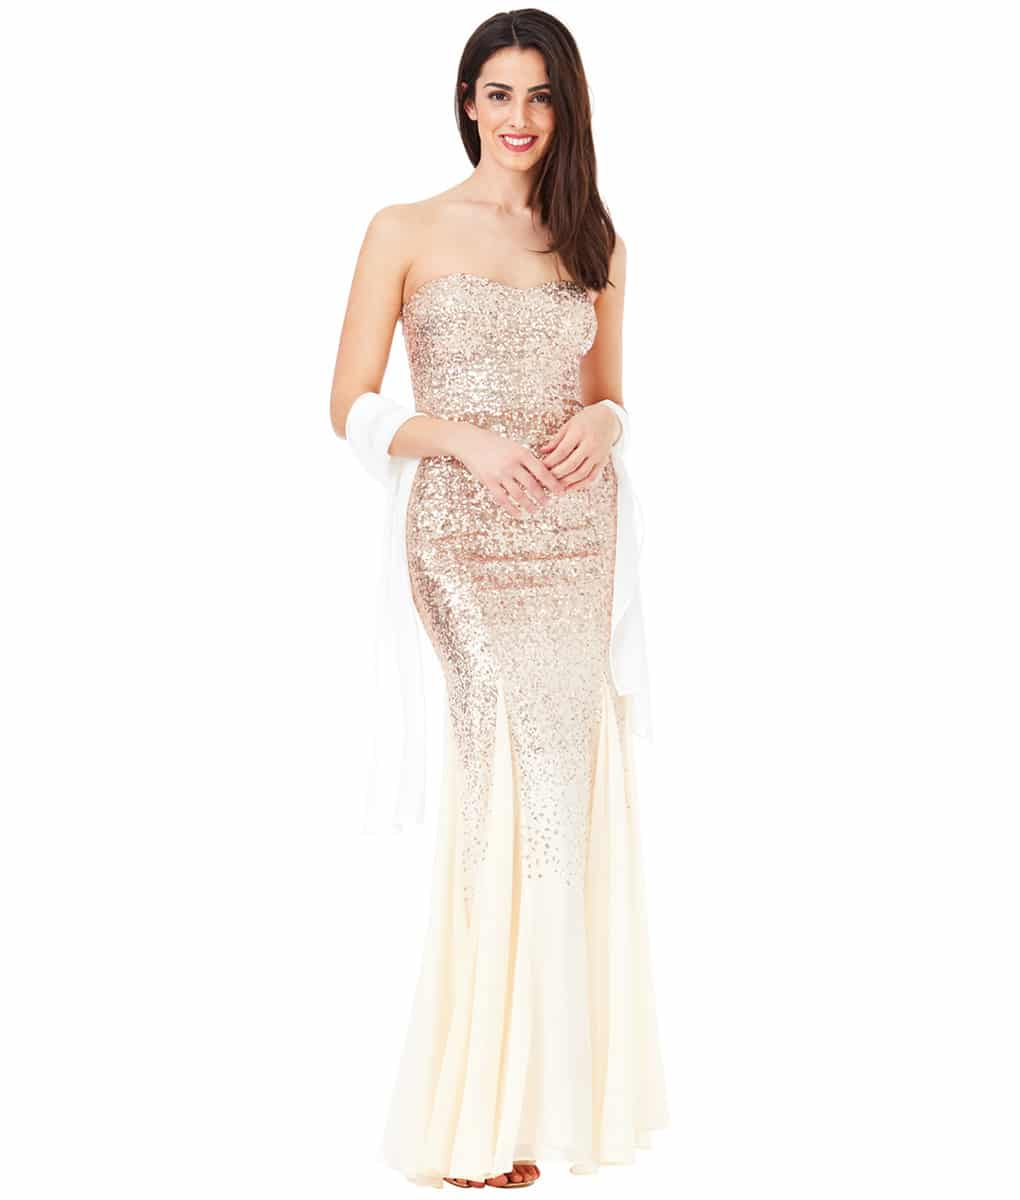 City Goddess - Champagne Sequins & Chiffon Gown | Alila Boutique